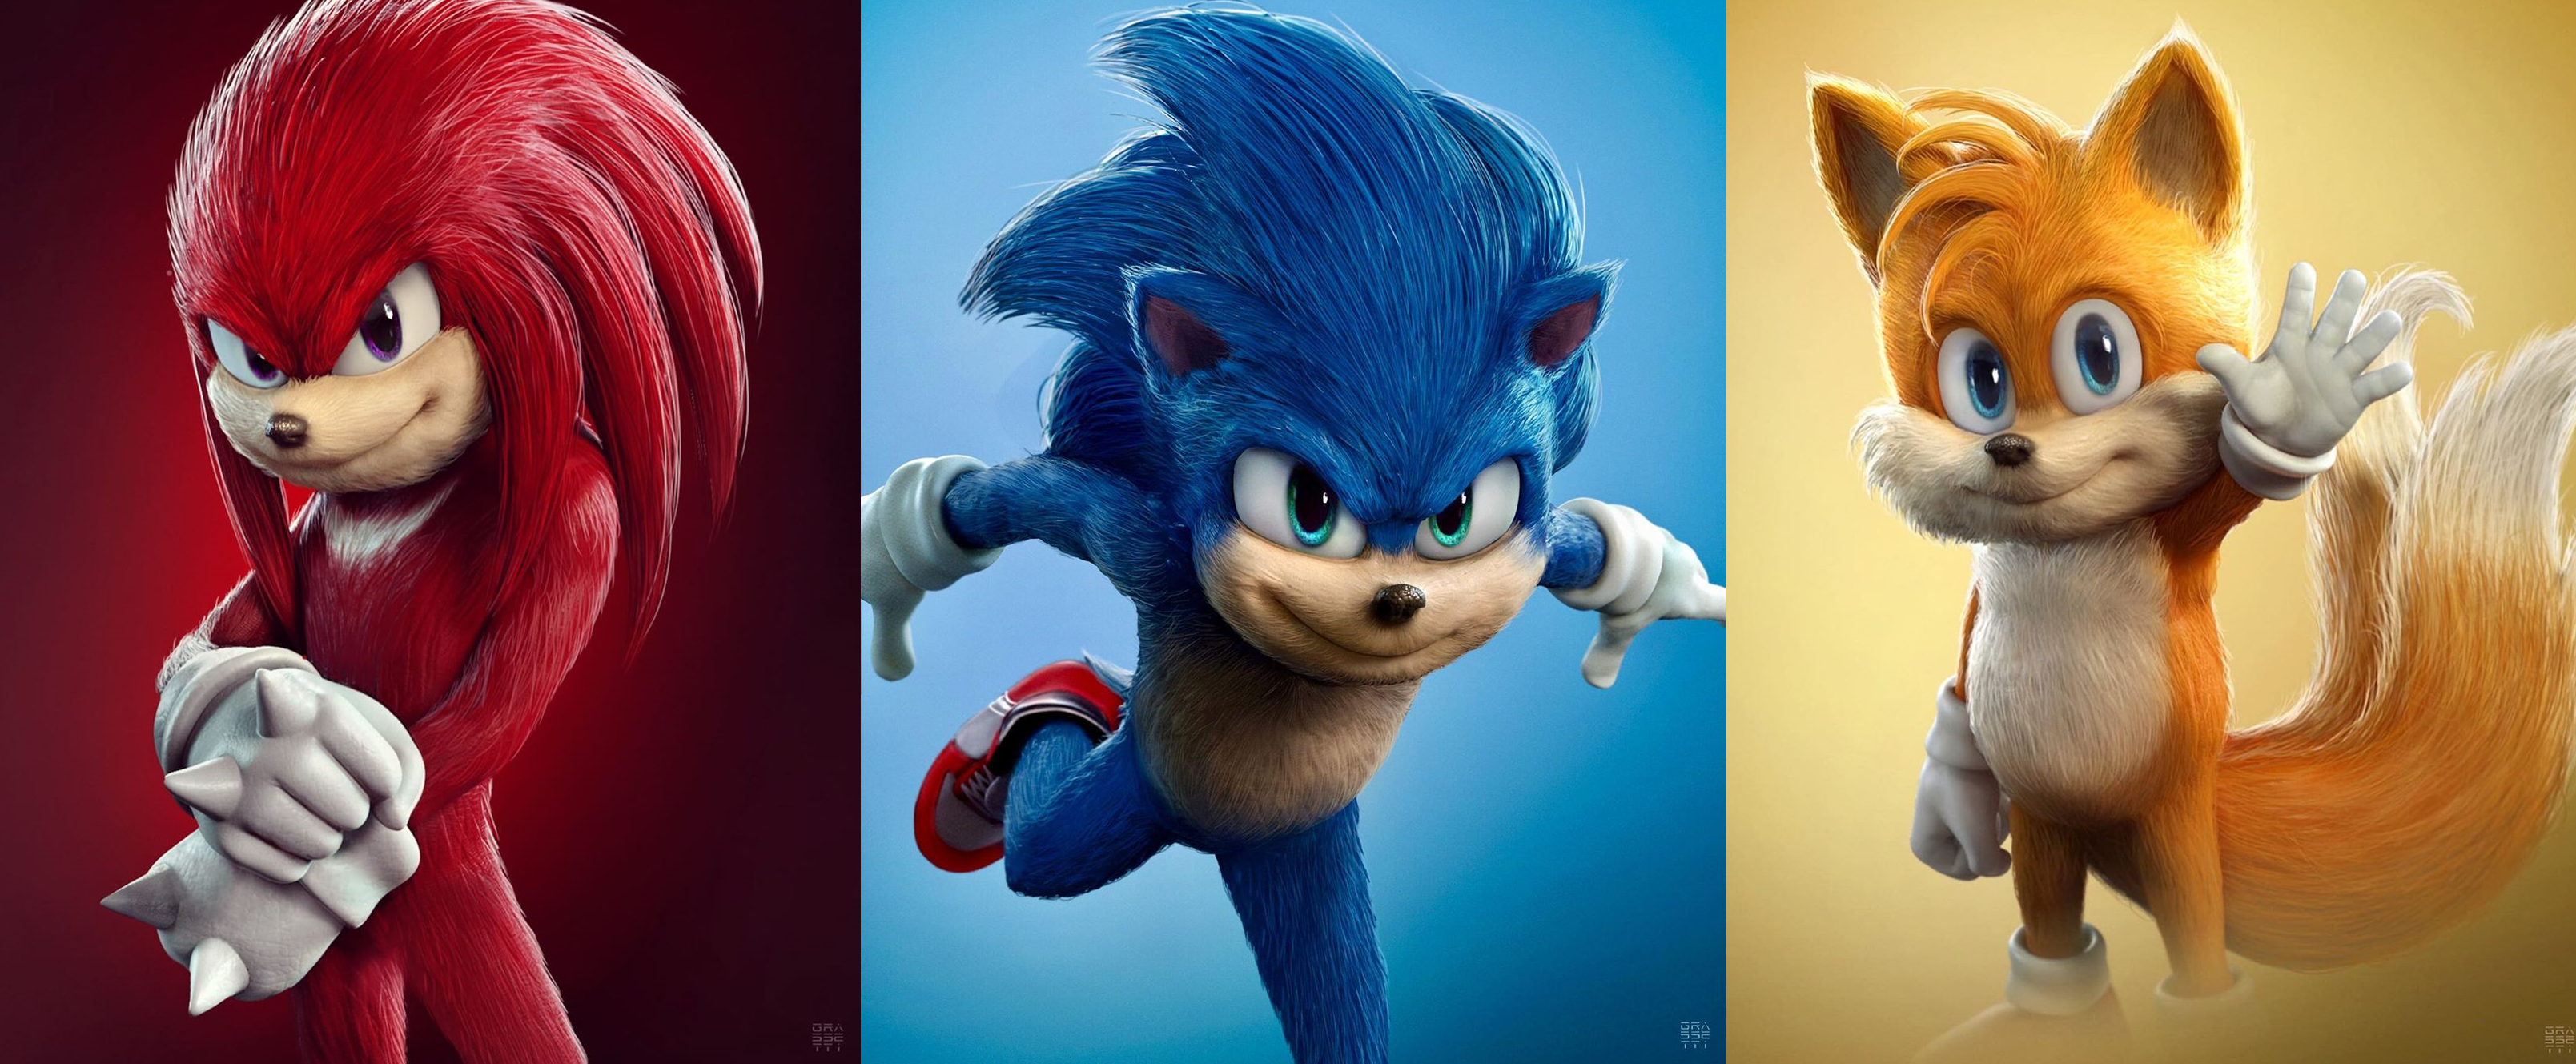 God Of War Art Director Puts His Spin On Sonic Tails And